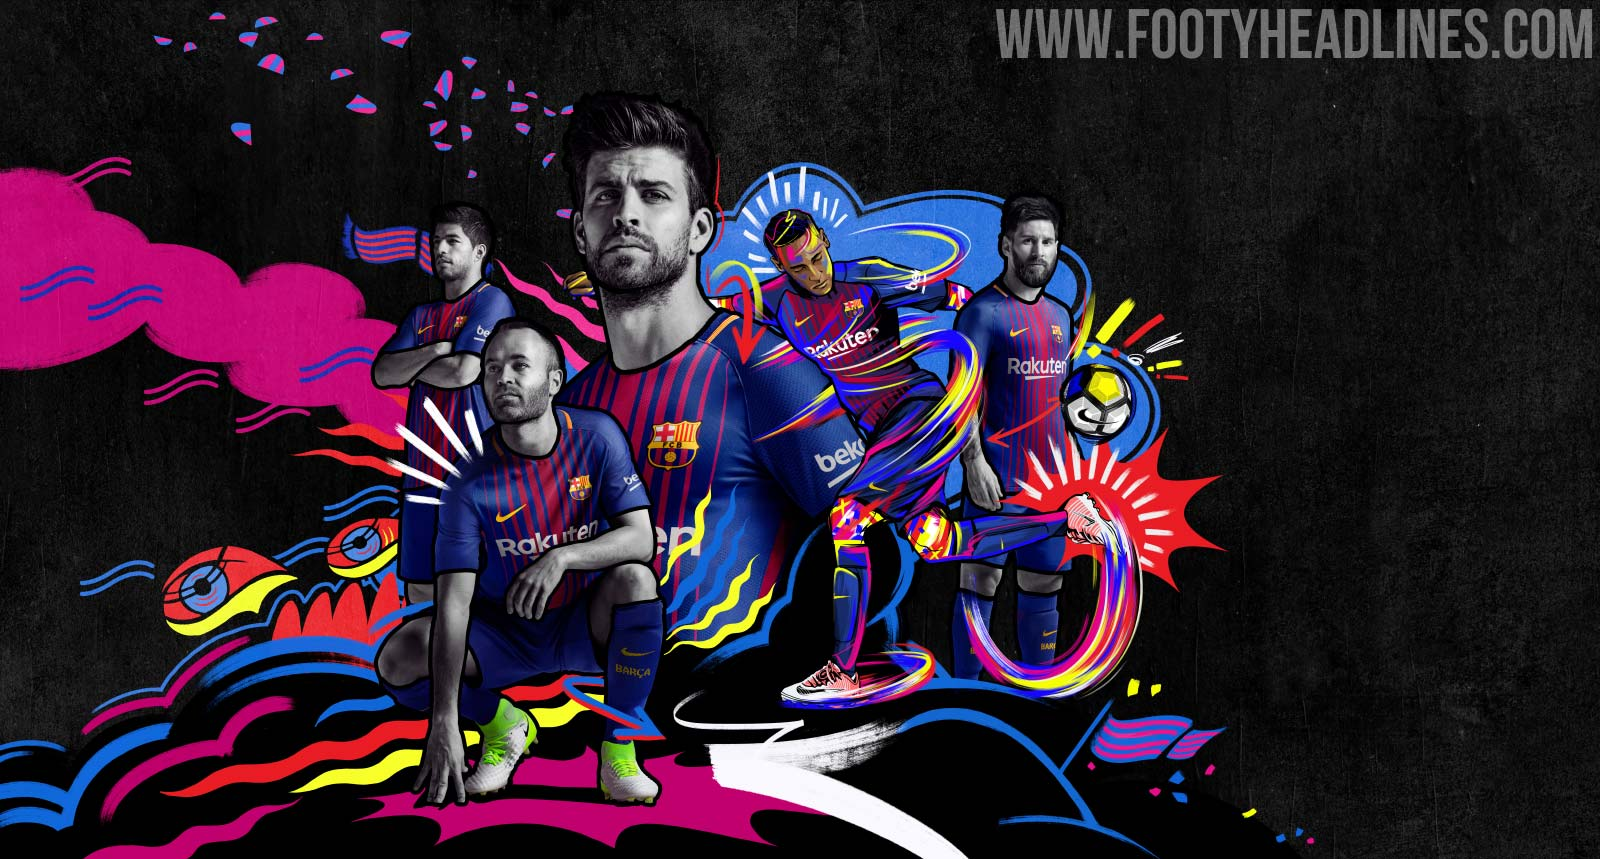 100+] FC Barcelona 2017/2018 Wallpapers on WallpaperSafari